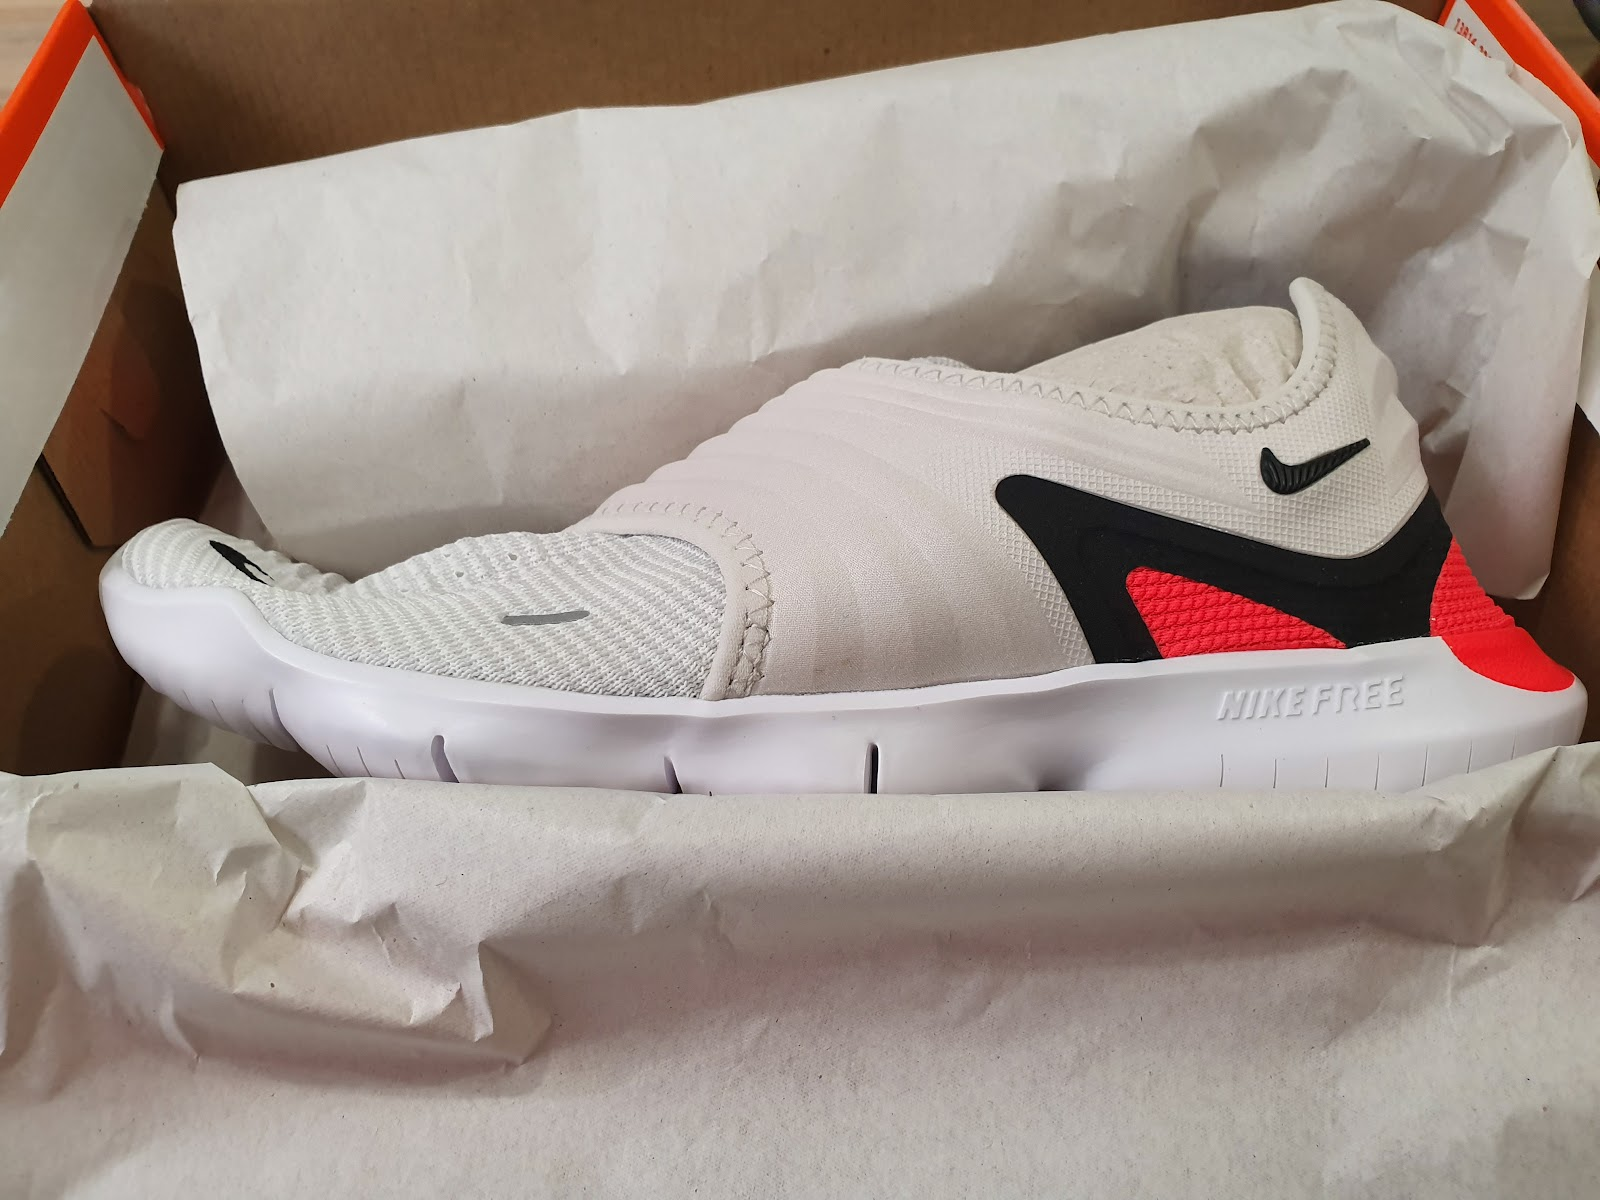 new concept 3dc51 d1299 The New Lace-less Nike Free RN 3.0 Is Your New Favourite ...